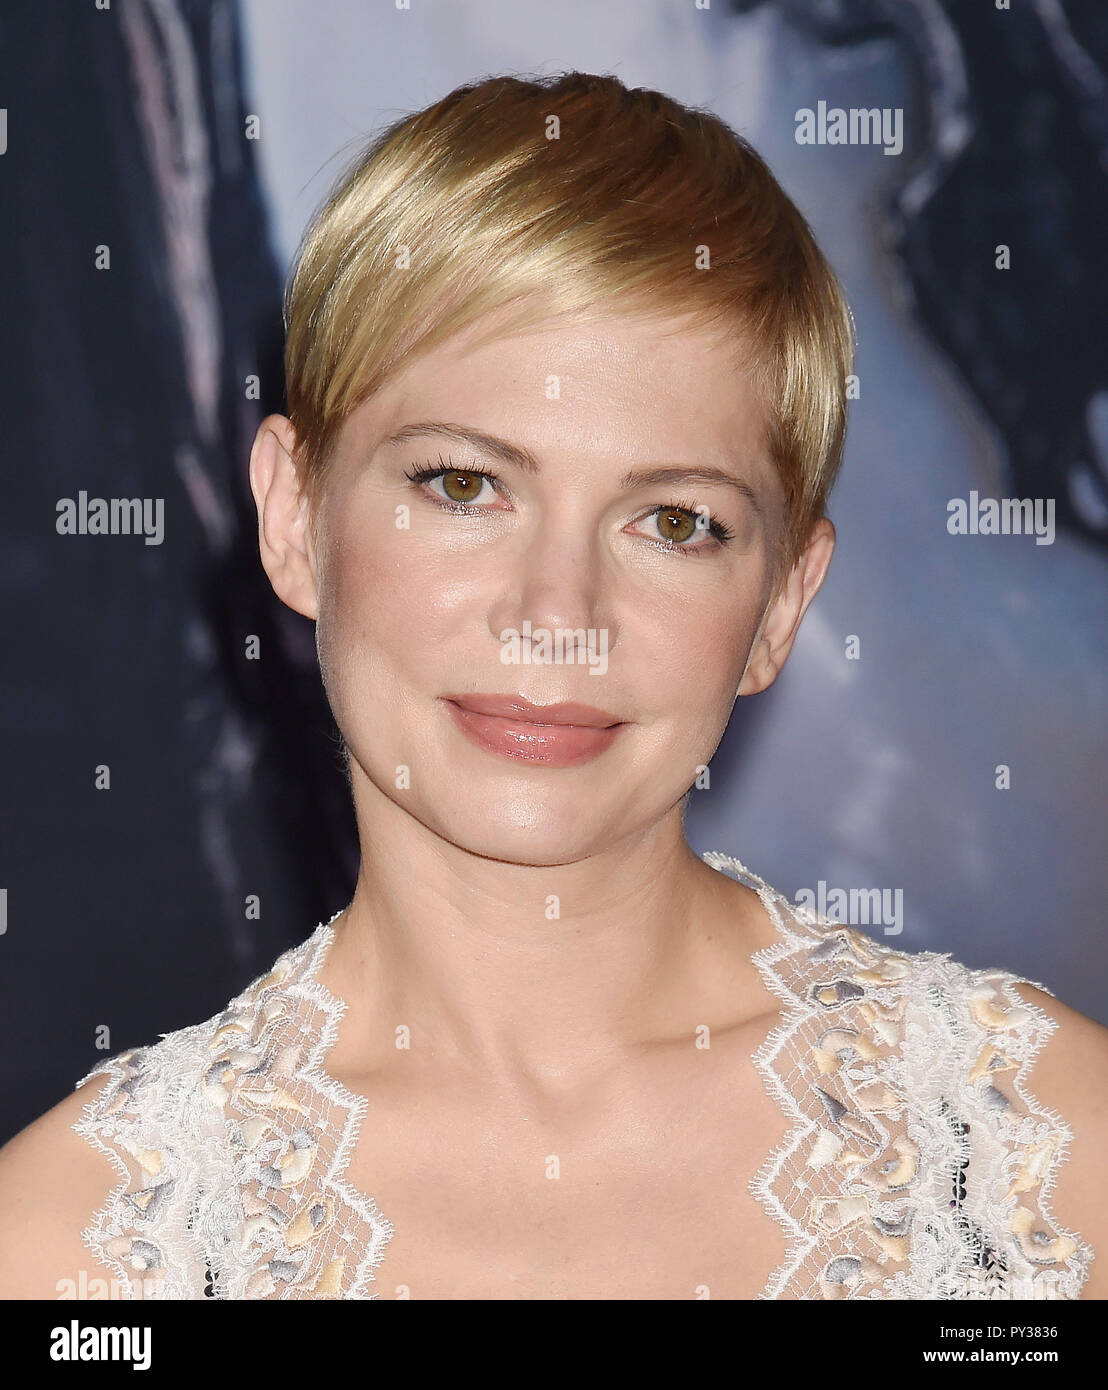 dbd254e97c8 MICHELLE WILLIAMS American film actress at the Premiere Of Columbia  Pictures   Venom  at Regency Village Theatre on October 1